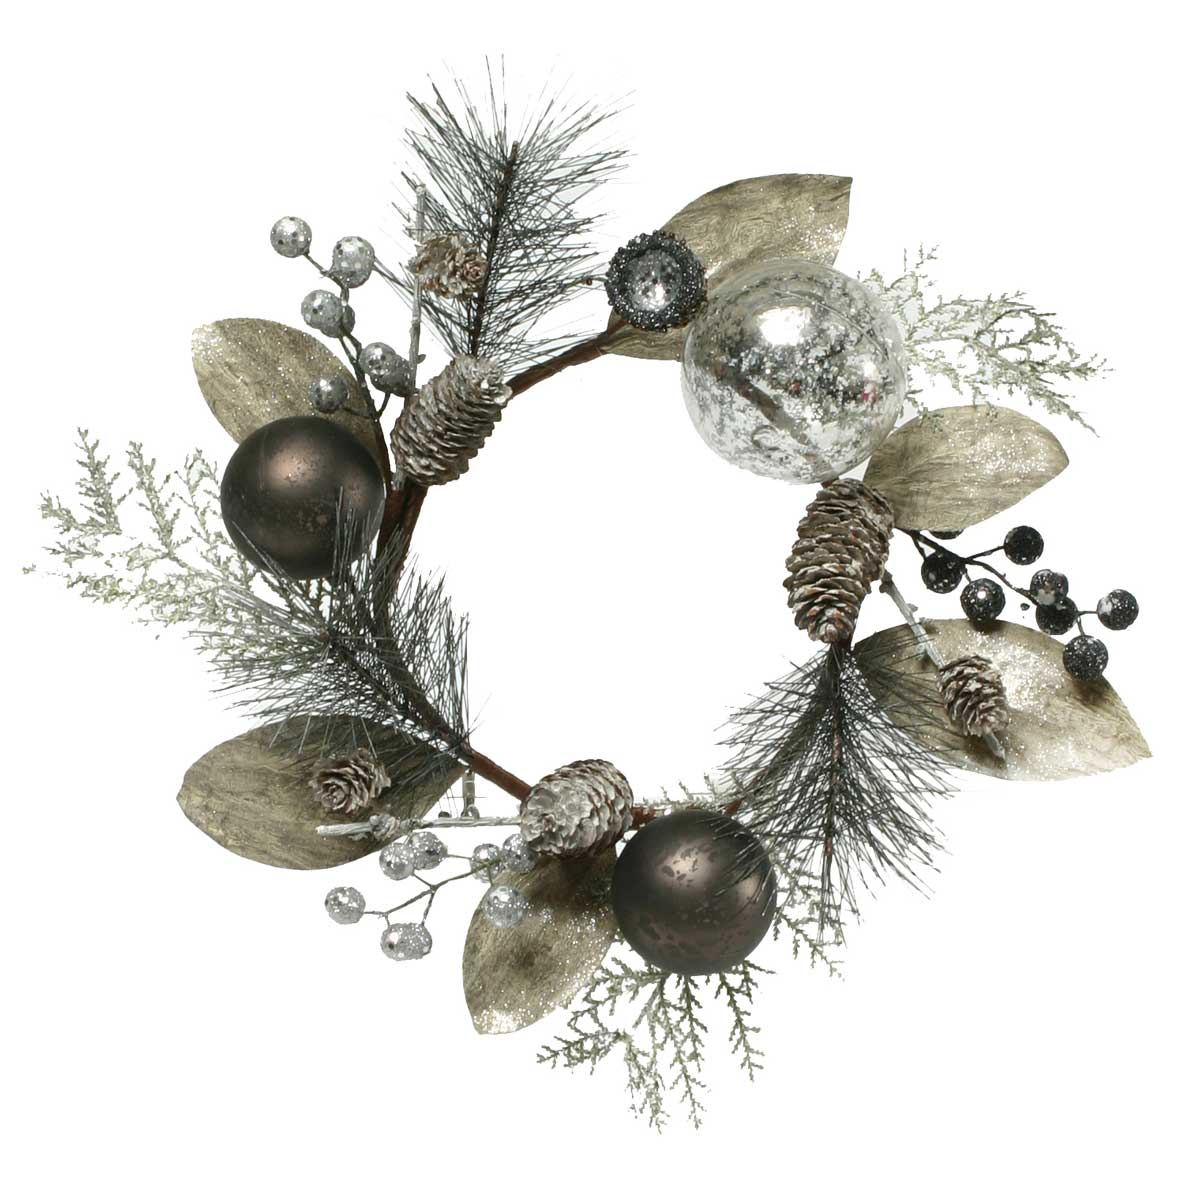 URBAN CHIC SILK CANDLE RING WITH PINECONES, BALLS, AND BERRIES